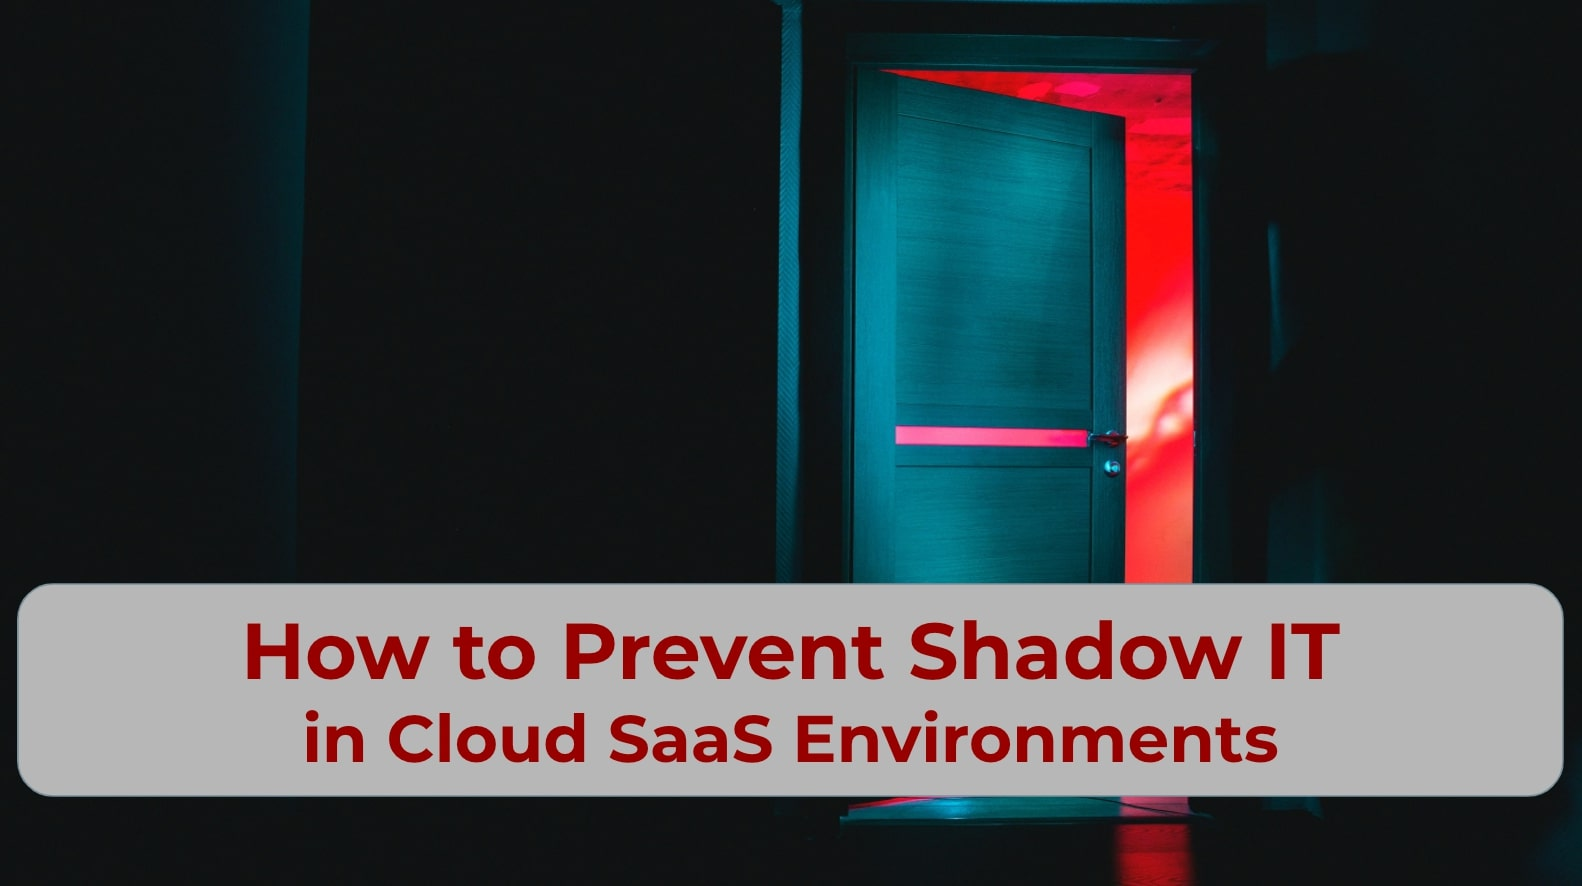 How to Prevent Shadow IT in Cloud SaaS Environments